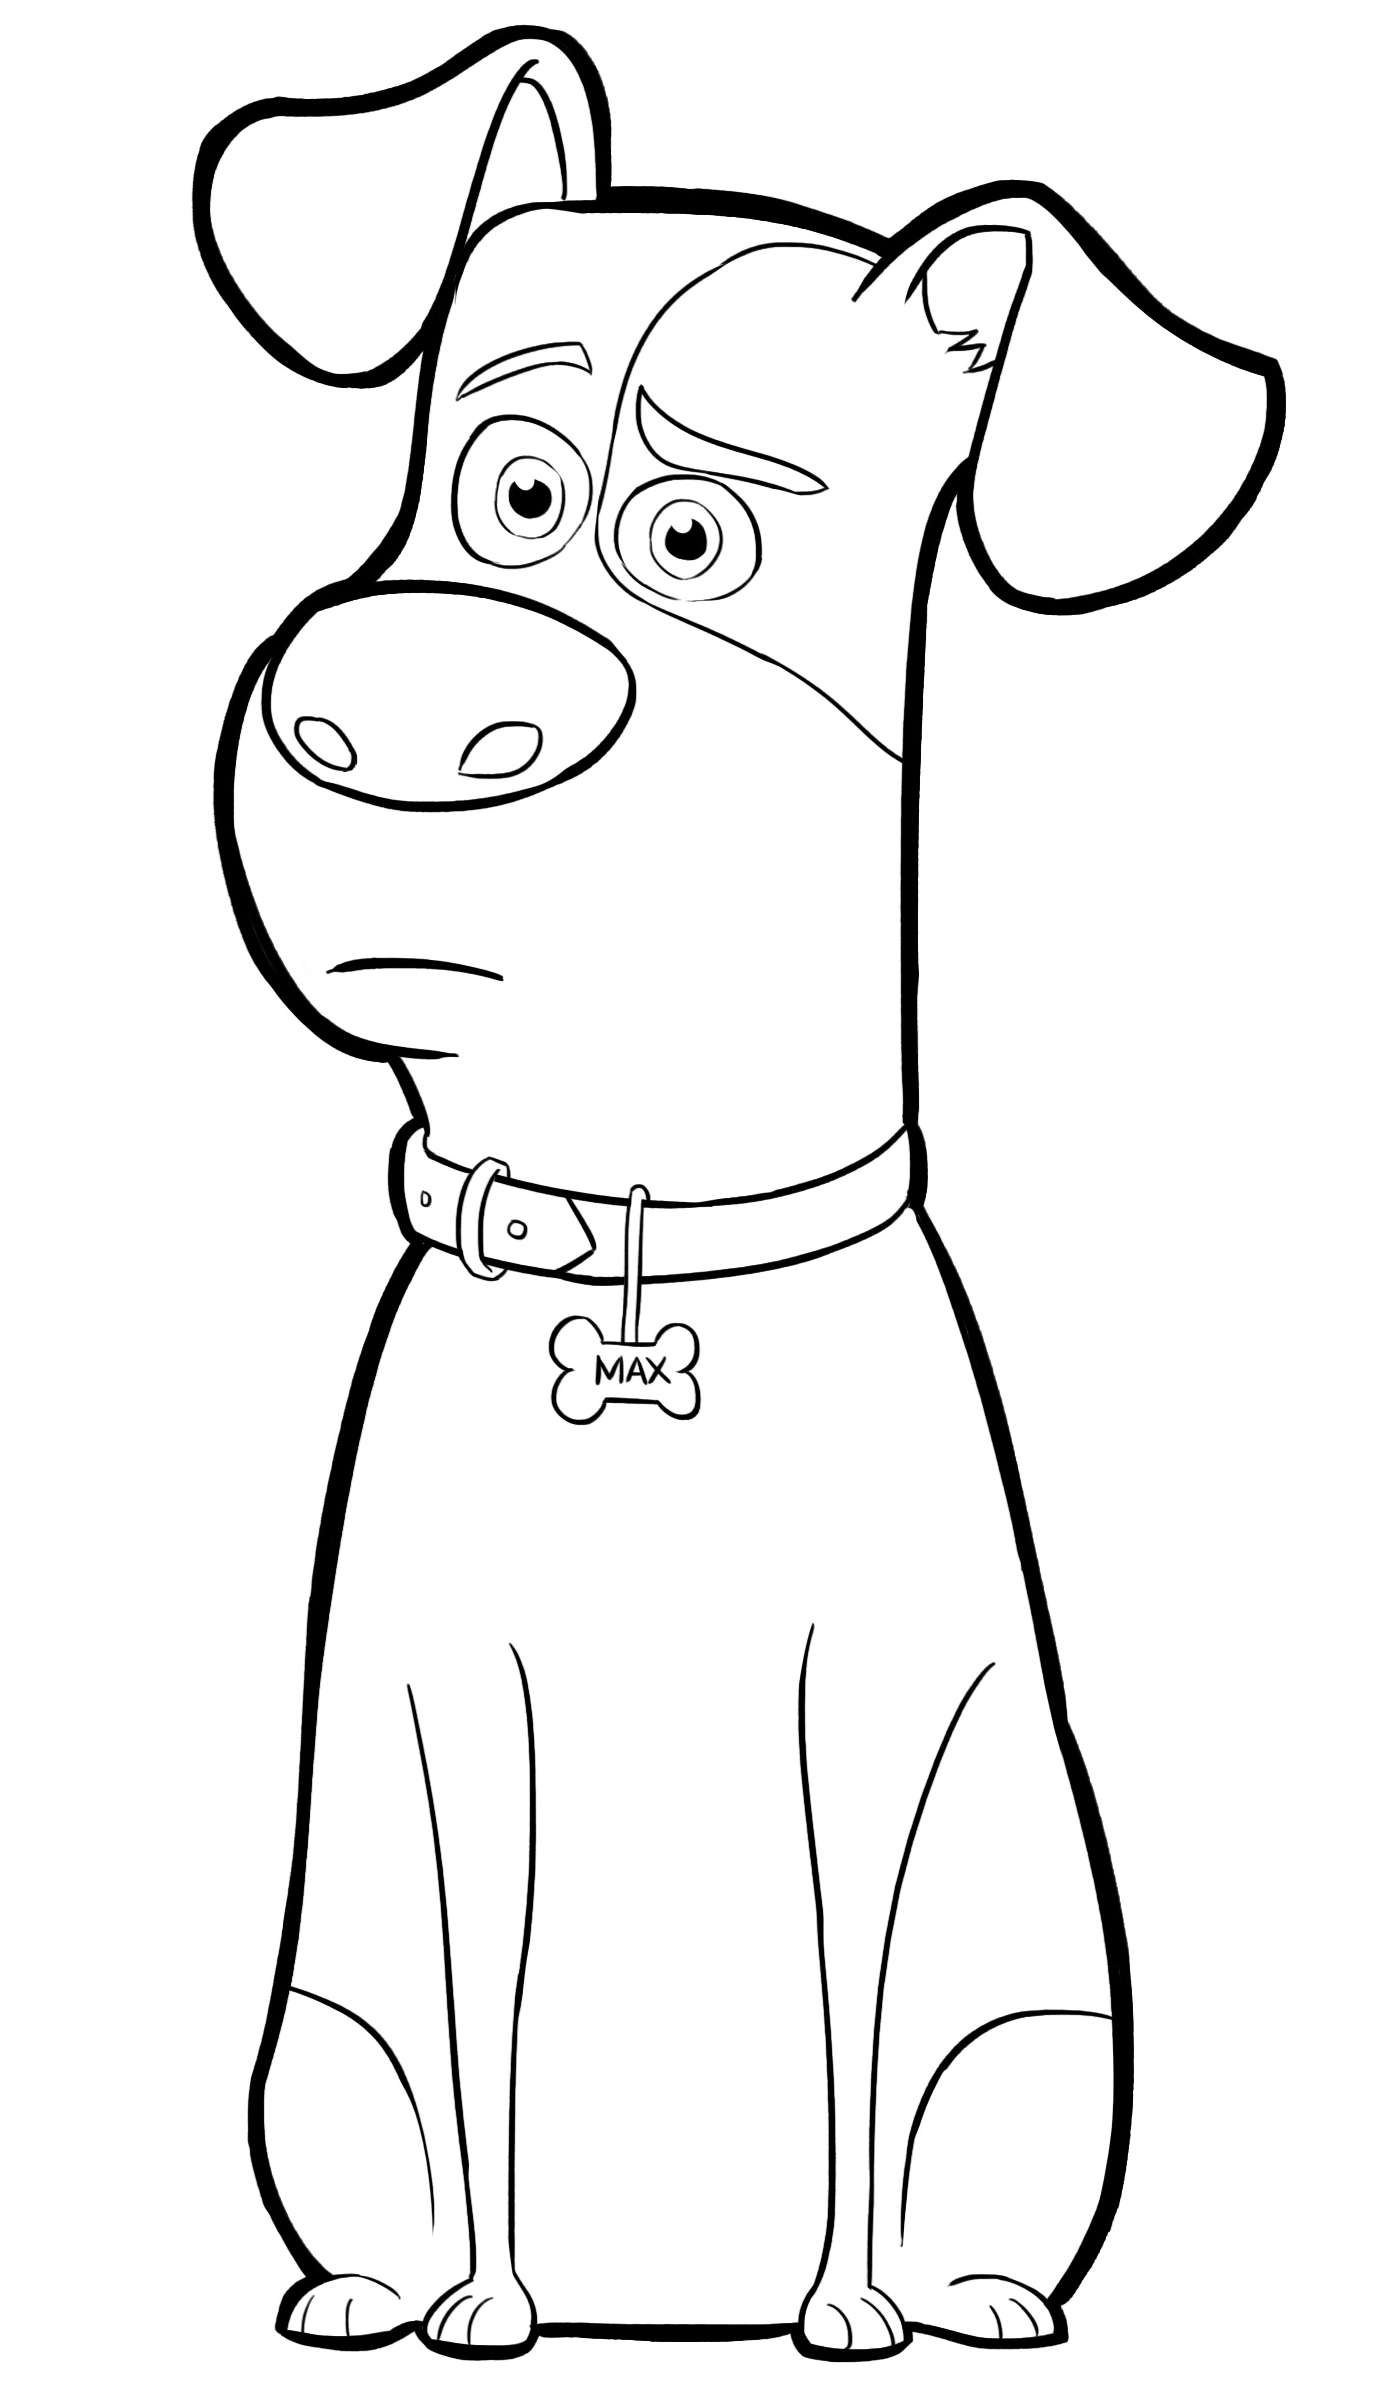 childrens colouring pictures jungle coloring pages best coloring pages for kids colouring pictures childrens